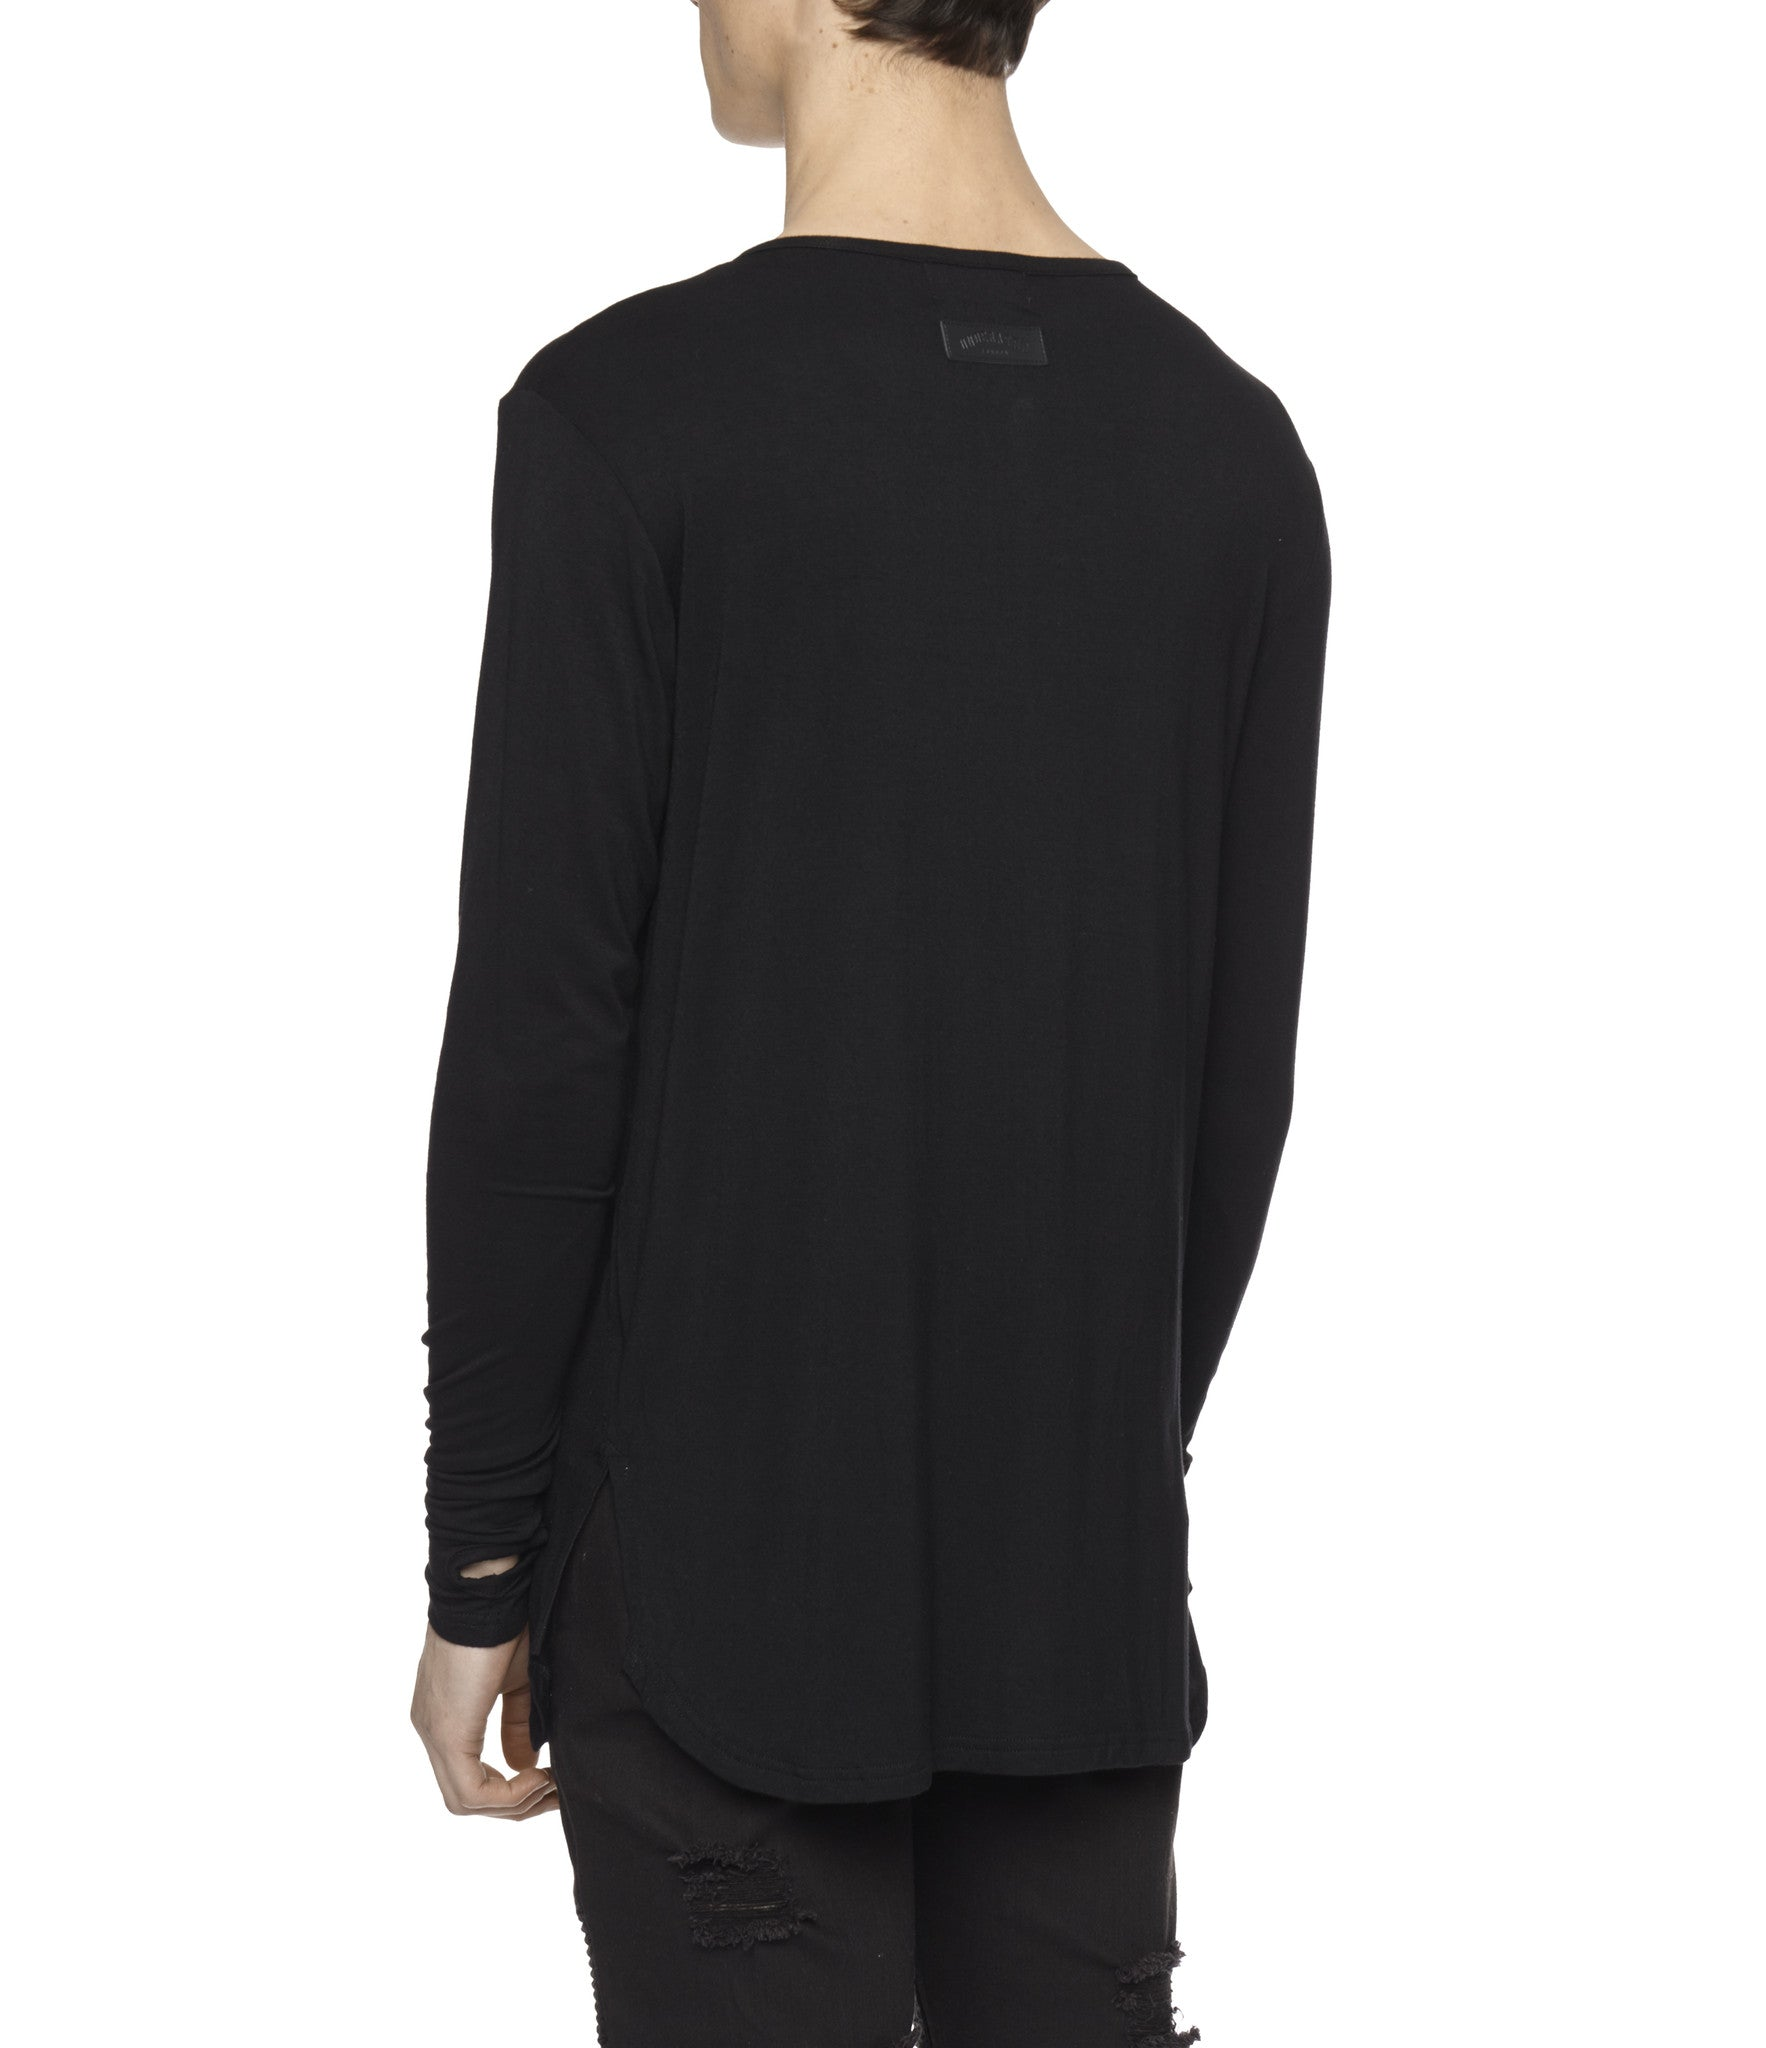 LS264 Under Layer Henley Tee - Black - underated london - underatedco - 5